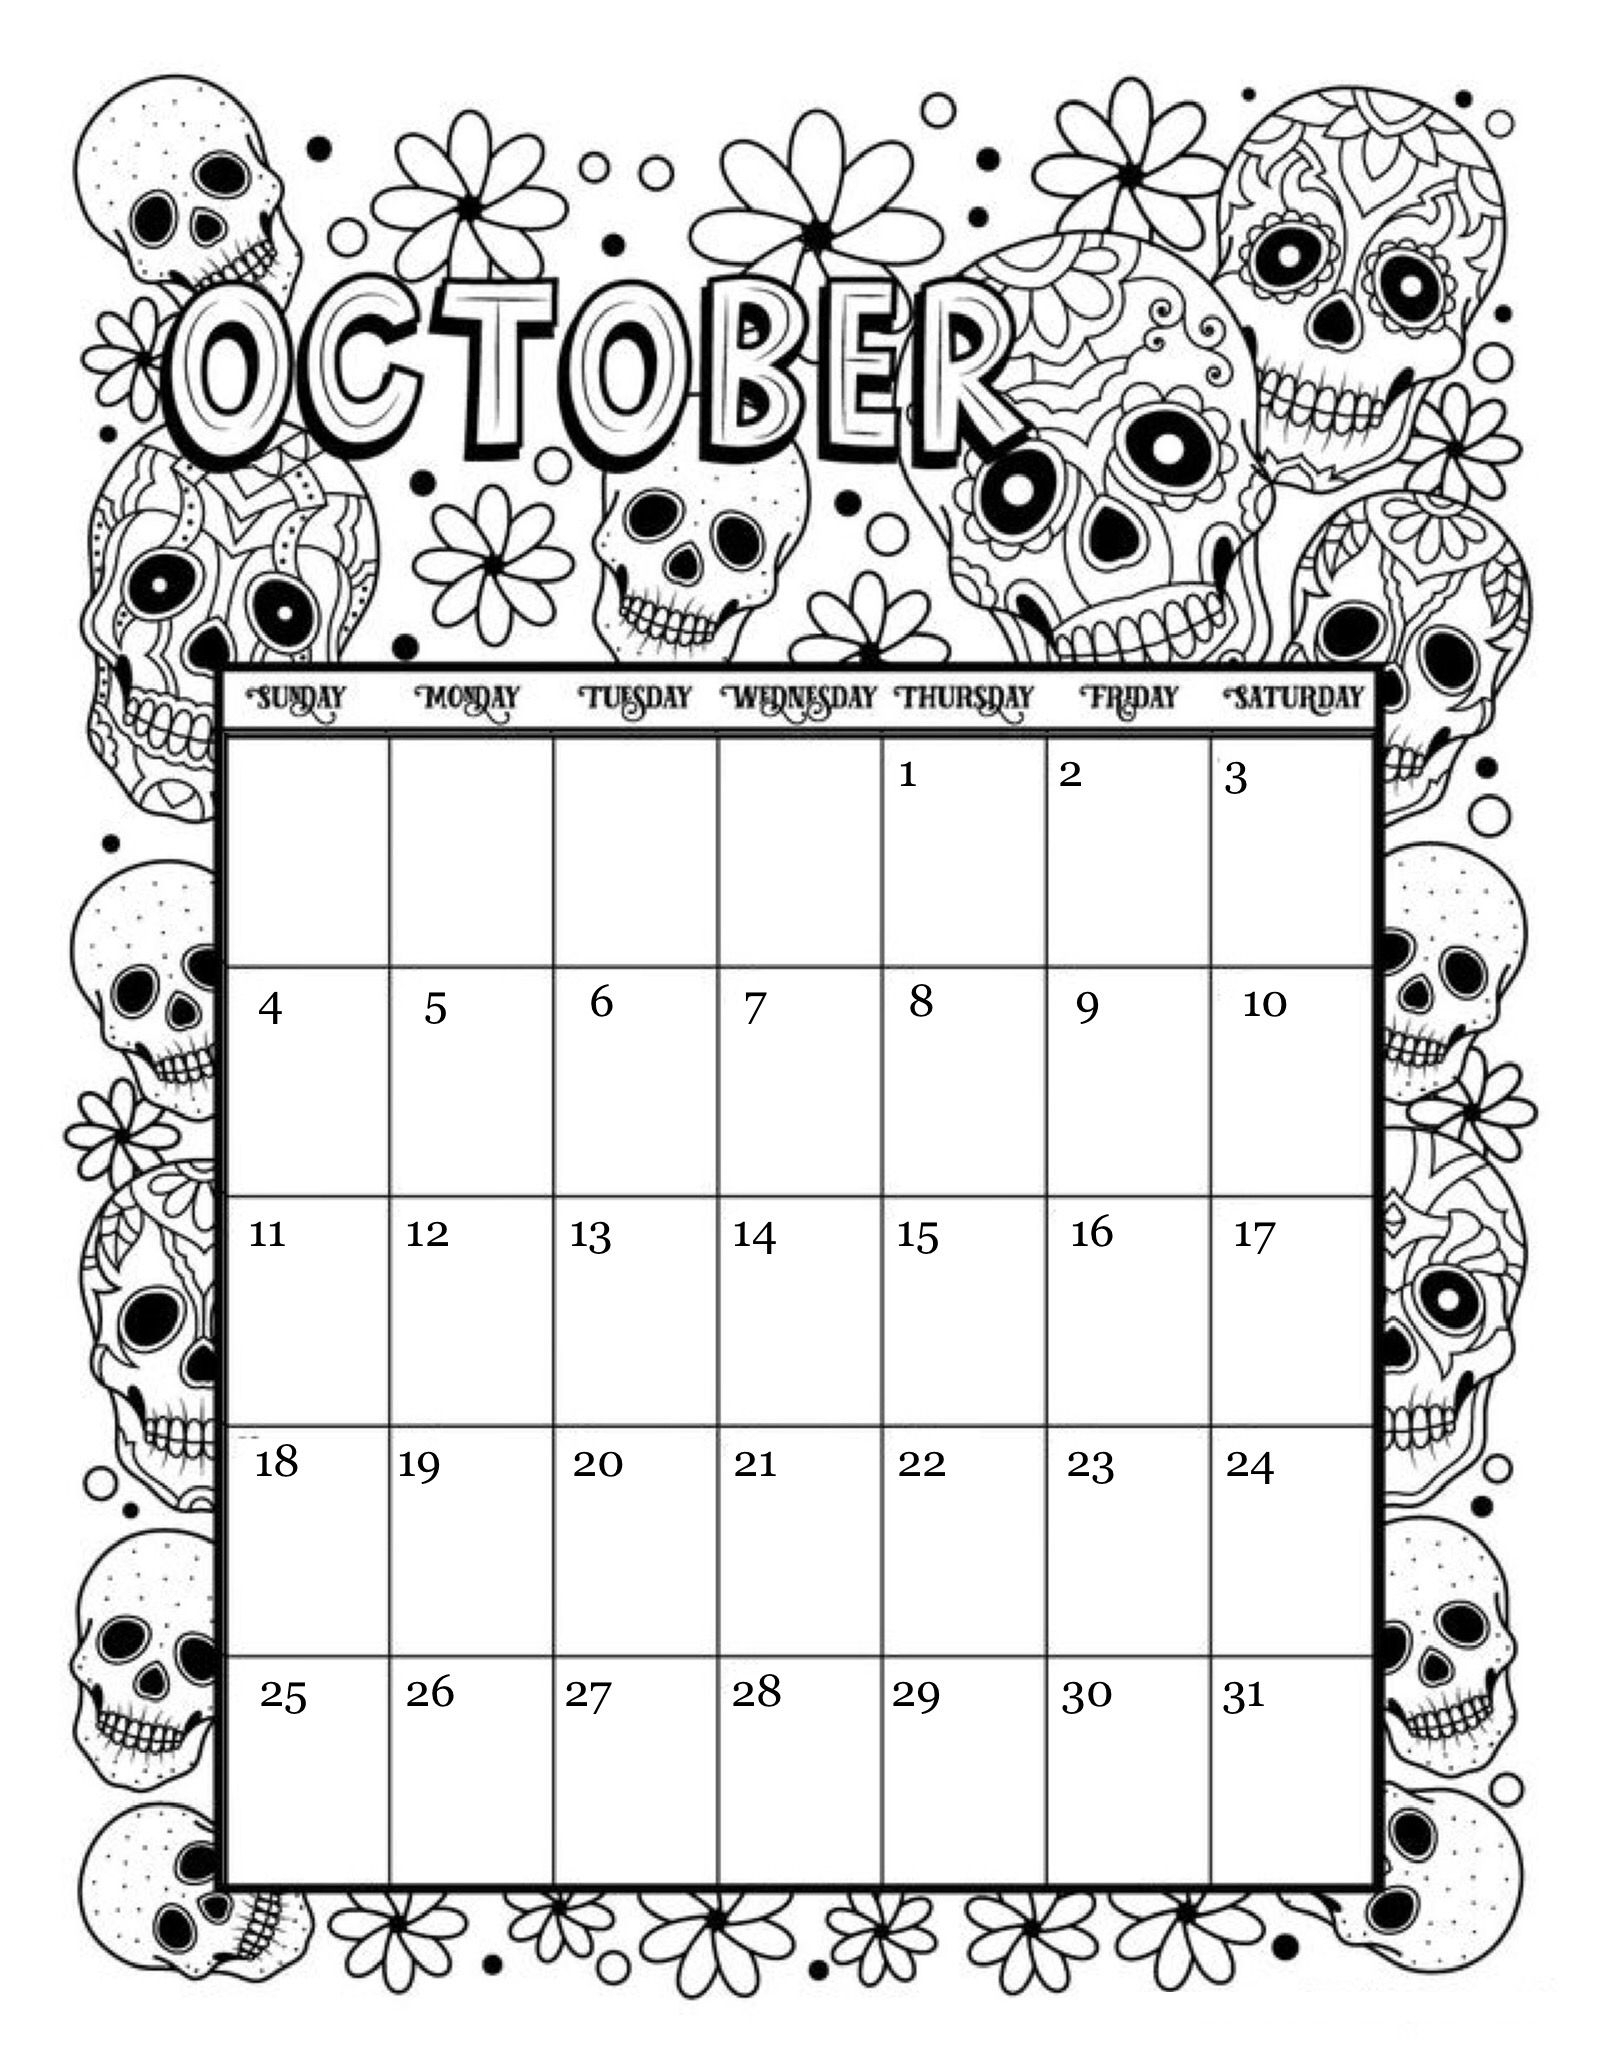 Collect October 2021 Calendar To Color And Print